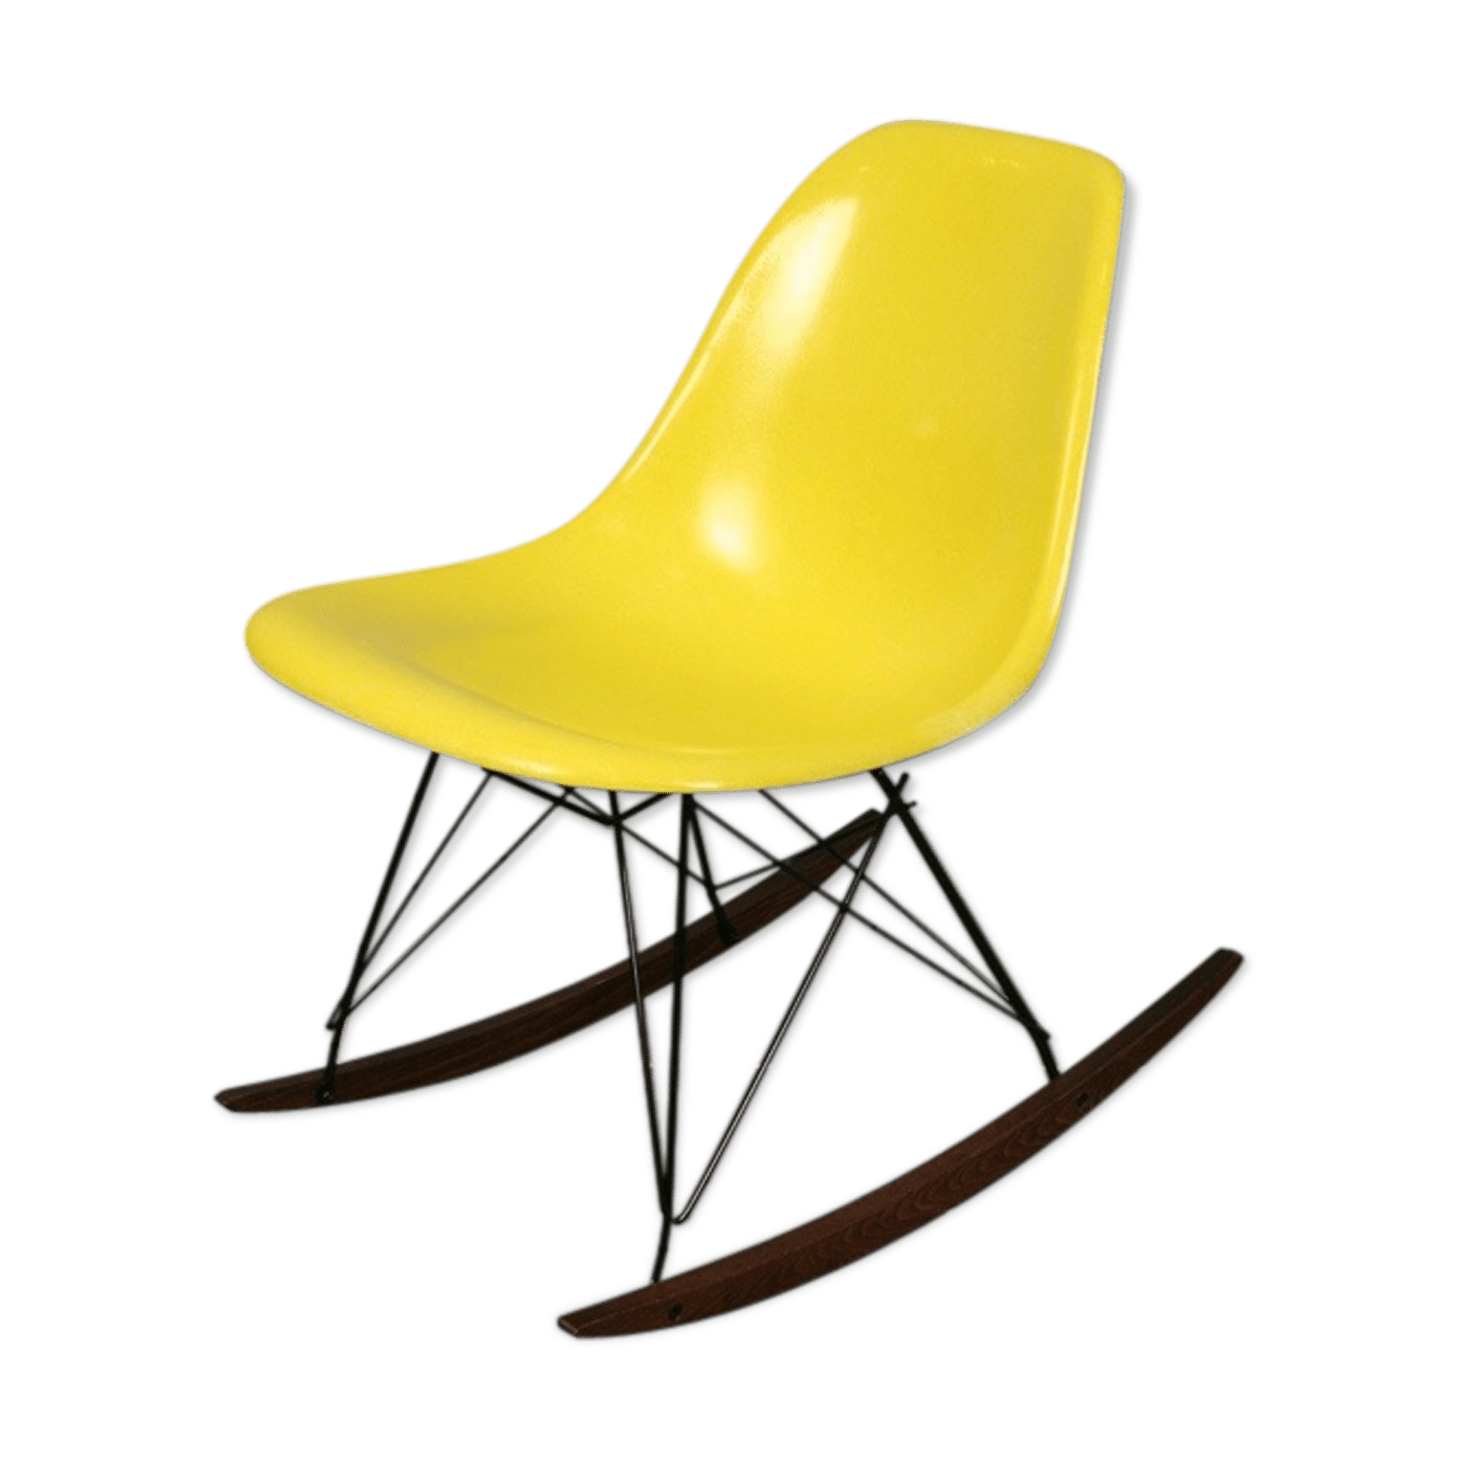 Chaise Bascule Eames Finest Imitation